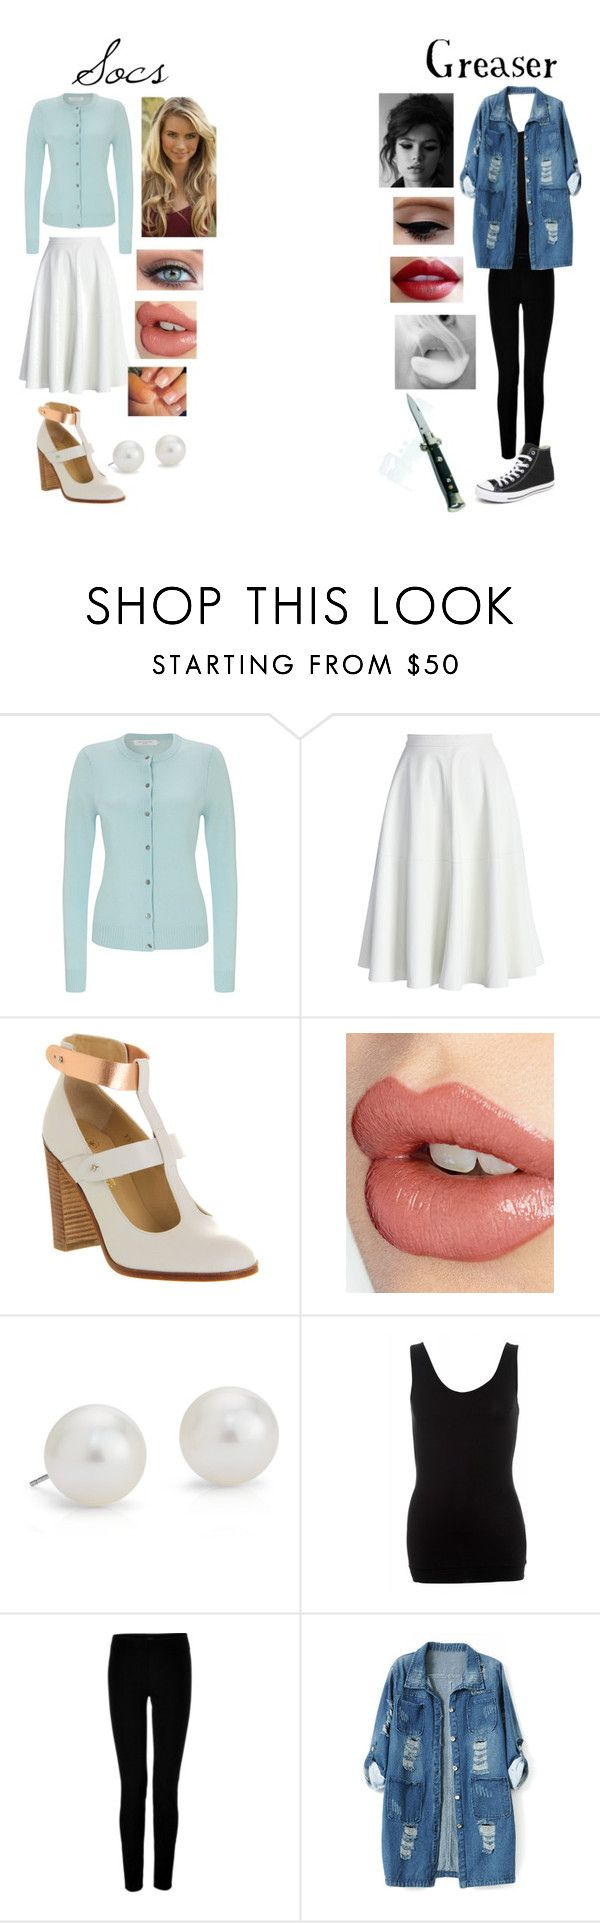 """Greasers and Socs!"" by stay-gold-ponyboy-1 ❤ liked on Polyvore featuring John Lewis, Chicwish, Victoria's Secret, Charlotte Tilbury, Blue Nile, DAY Birger et Mikkelsen, Joseph, Chicnova Fashion and Converse"